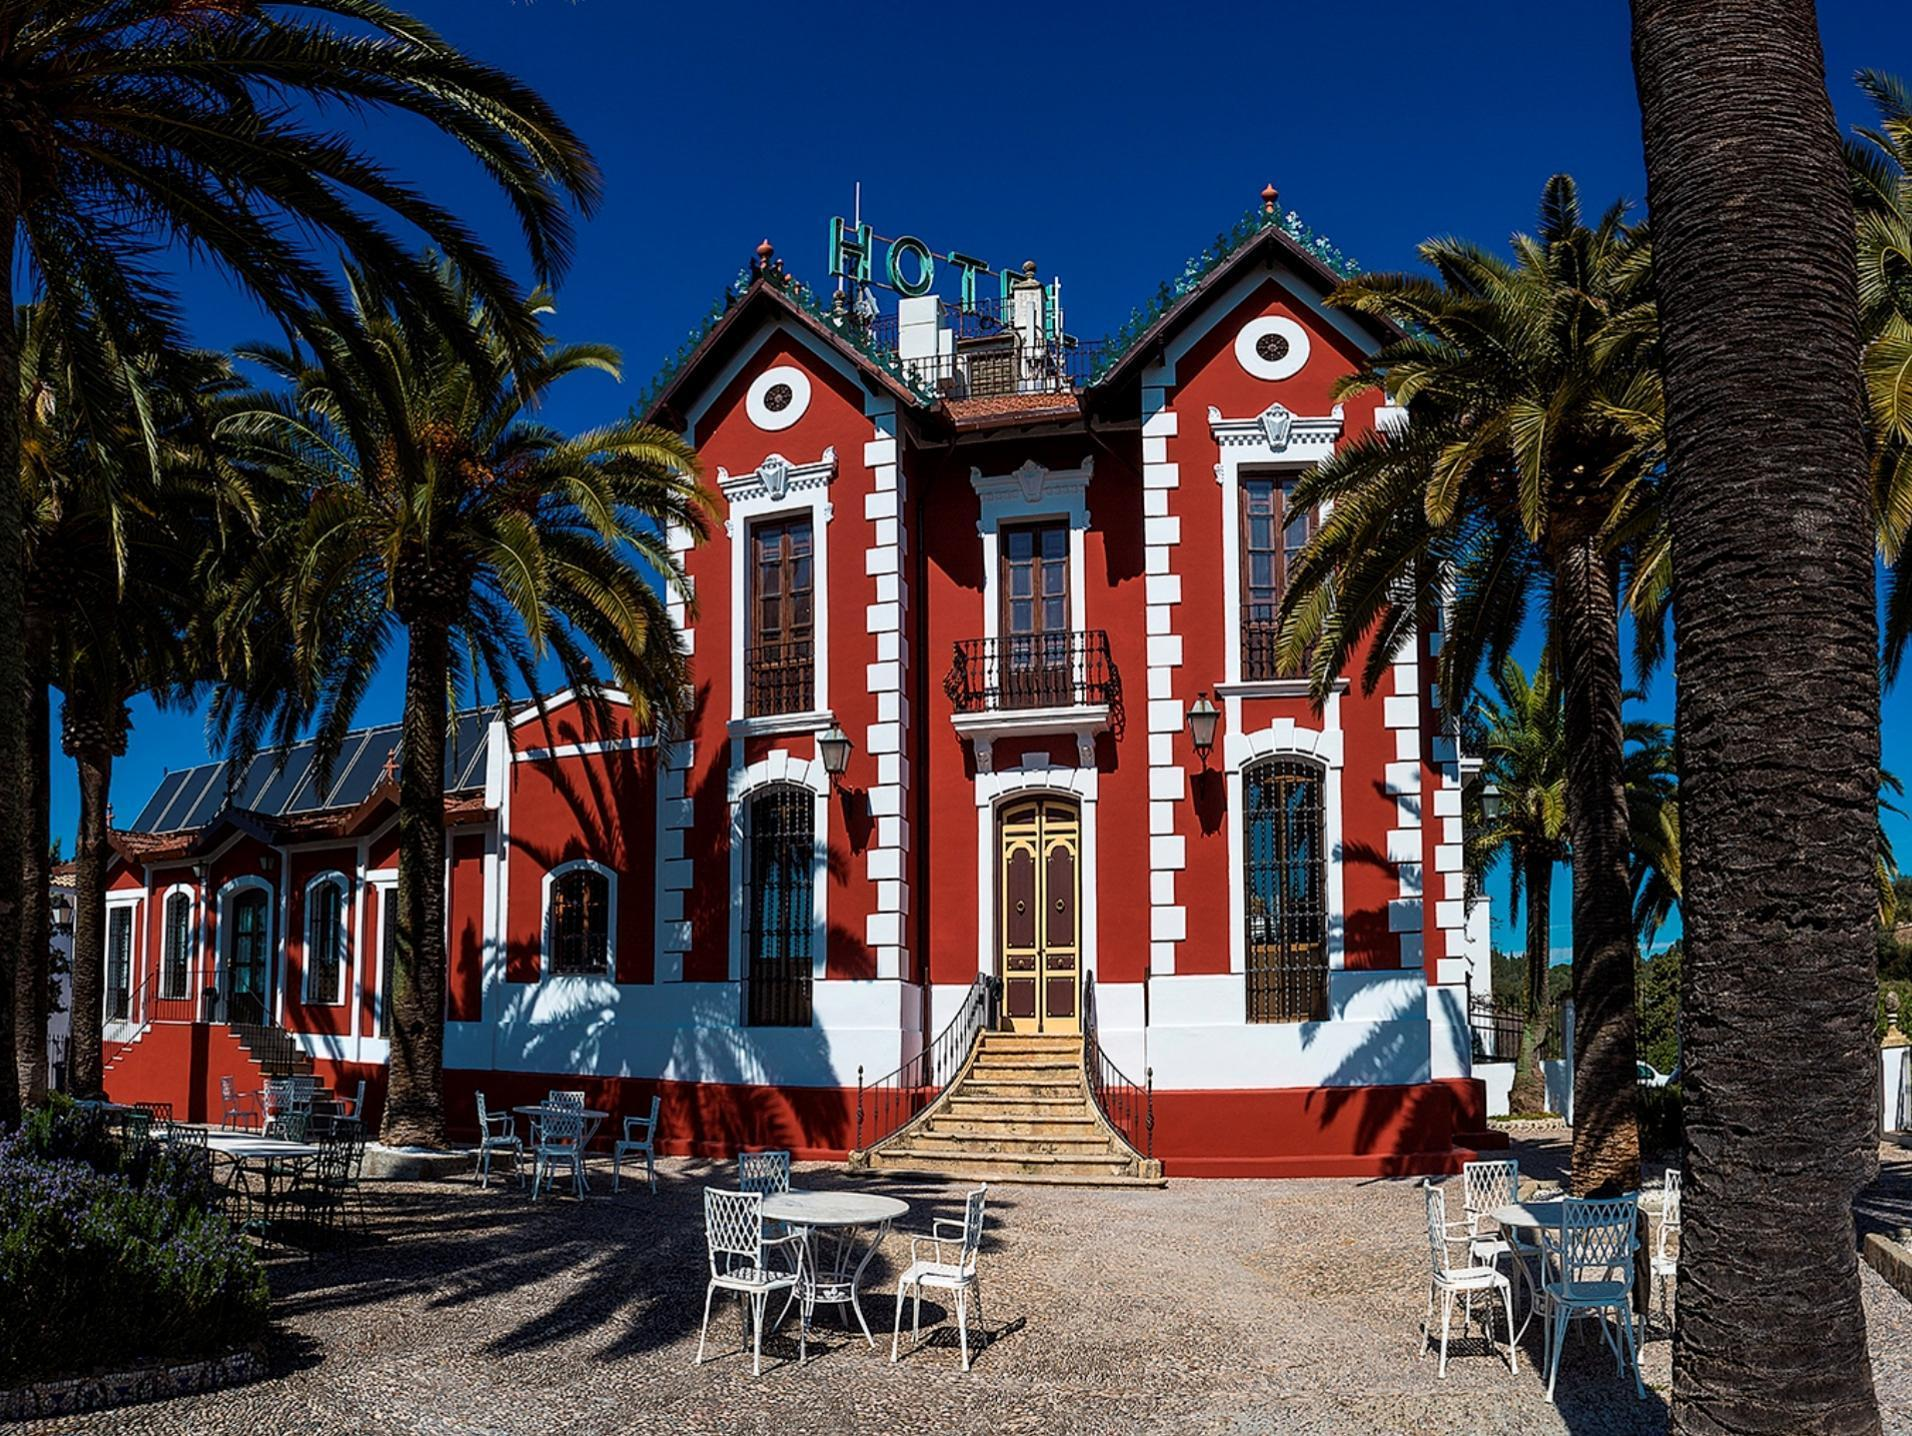 Hotel Abetos del Maestre Escuela - Hotels and Accommodation in Argentina, South America